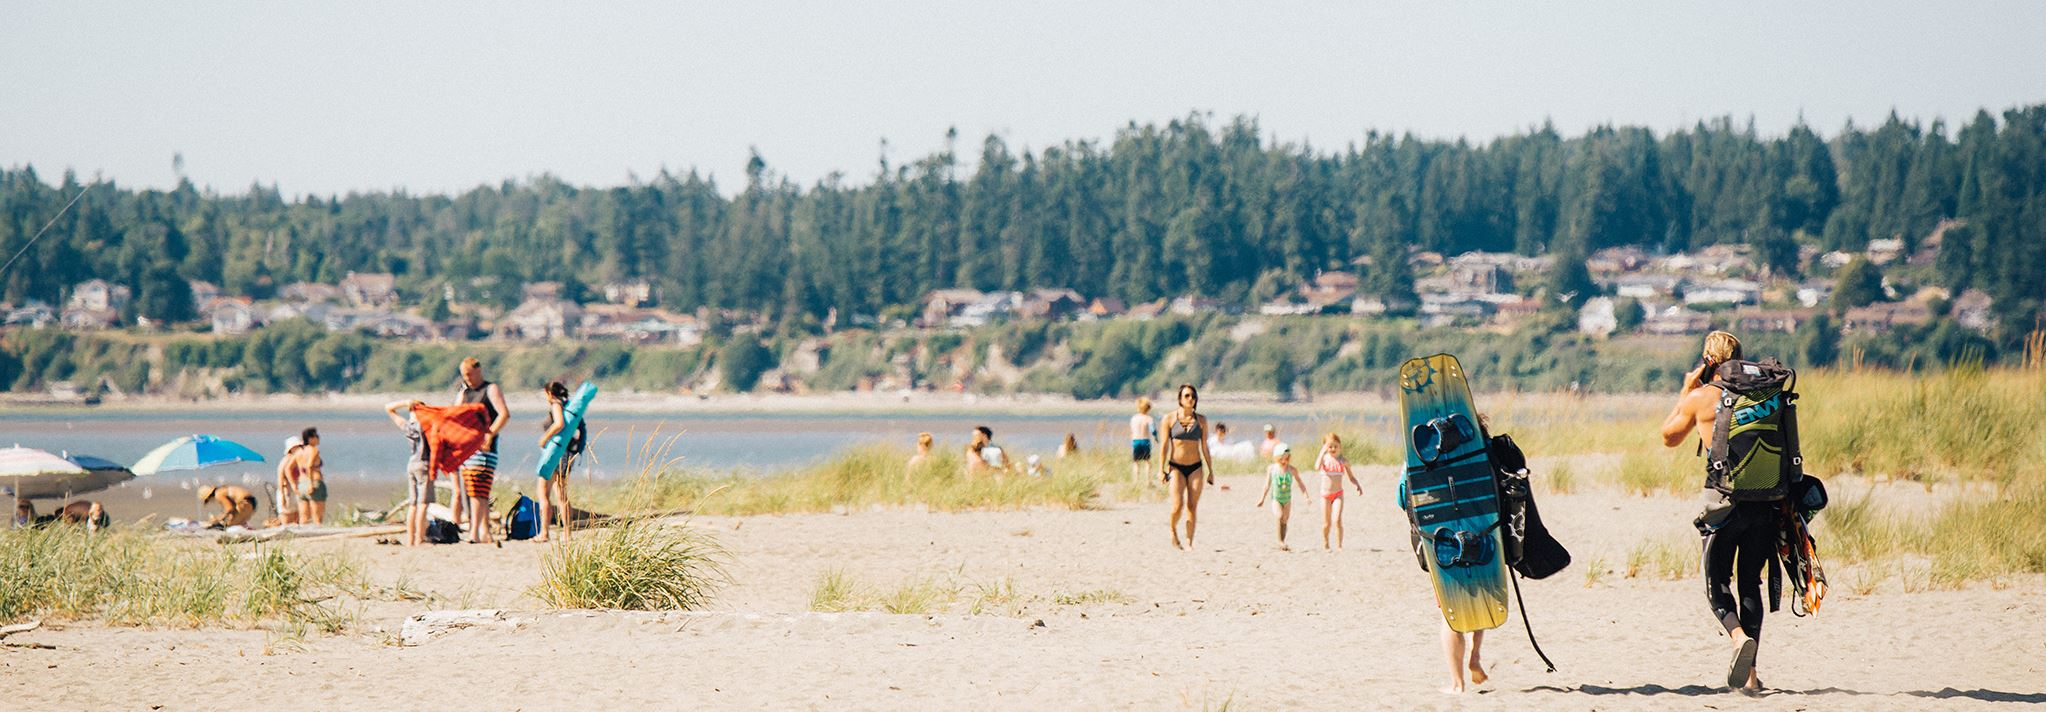 Two people with kiteboards, a mother with two kids, and a family walk on Jetty Island's beach.